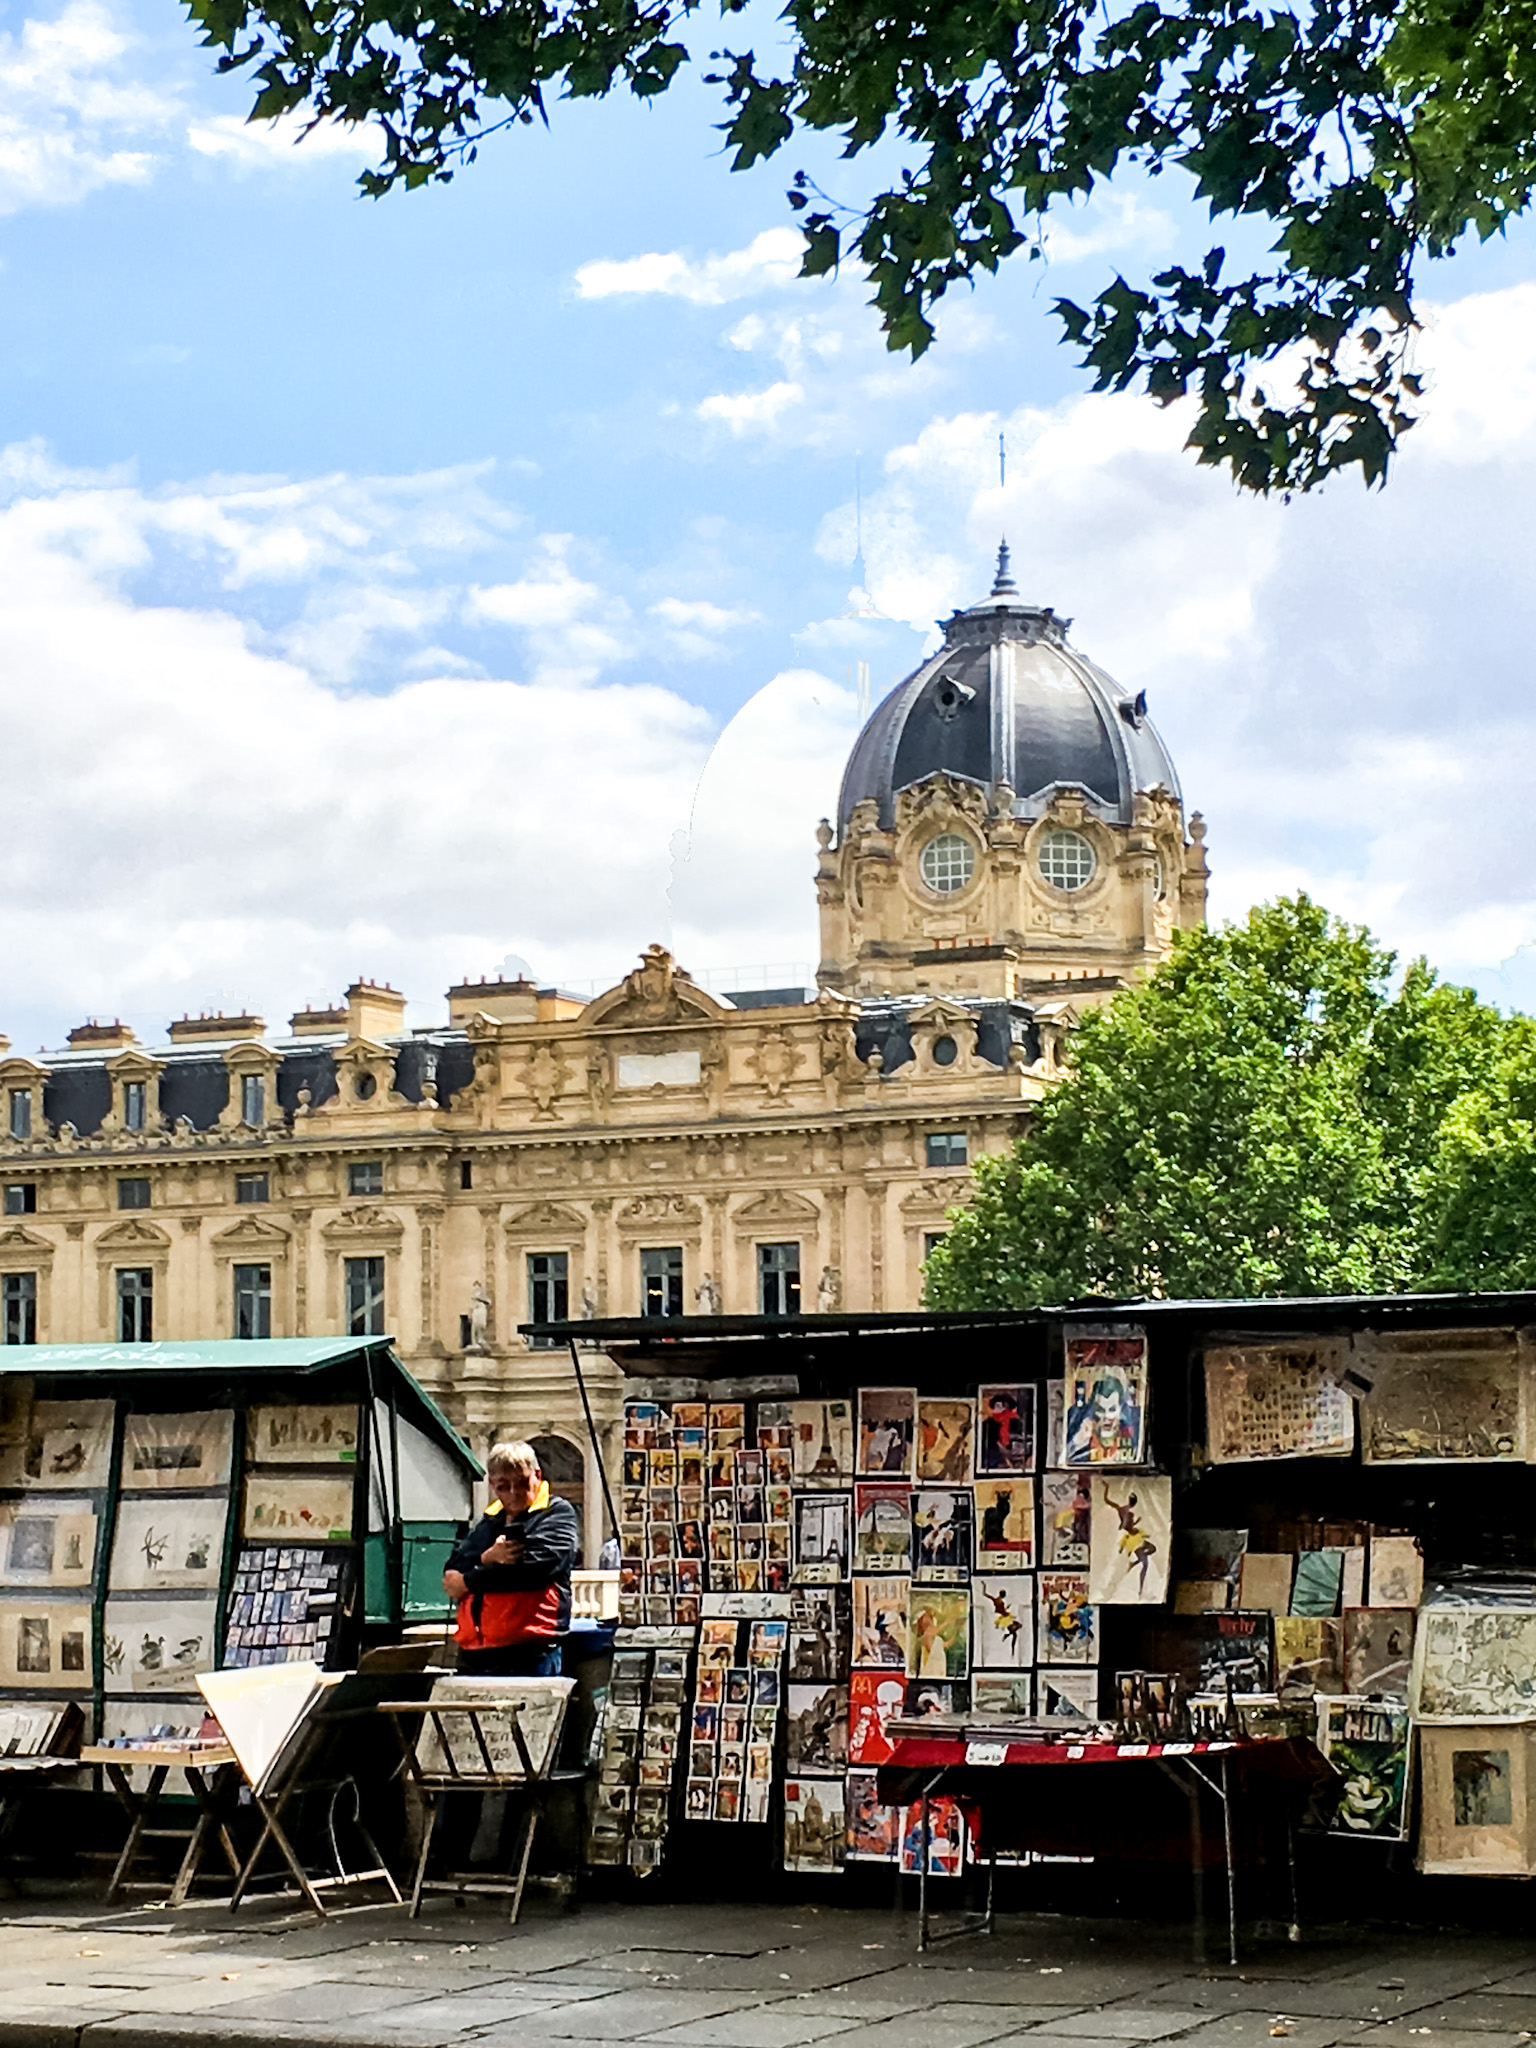 HOW TO VISIT PARIS